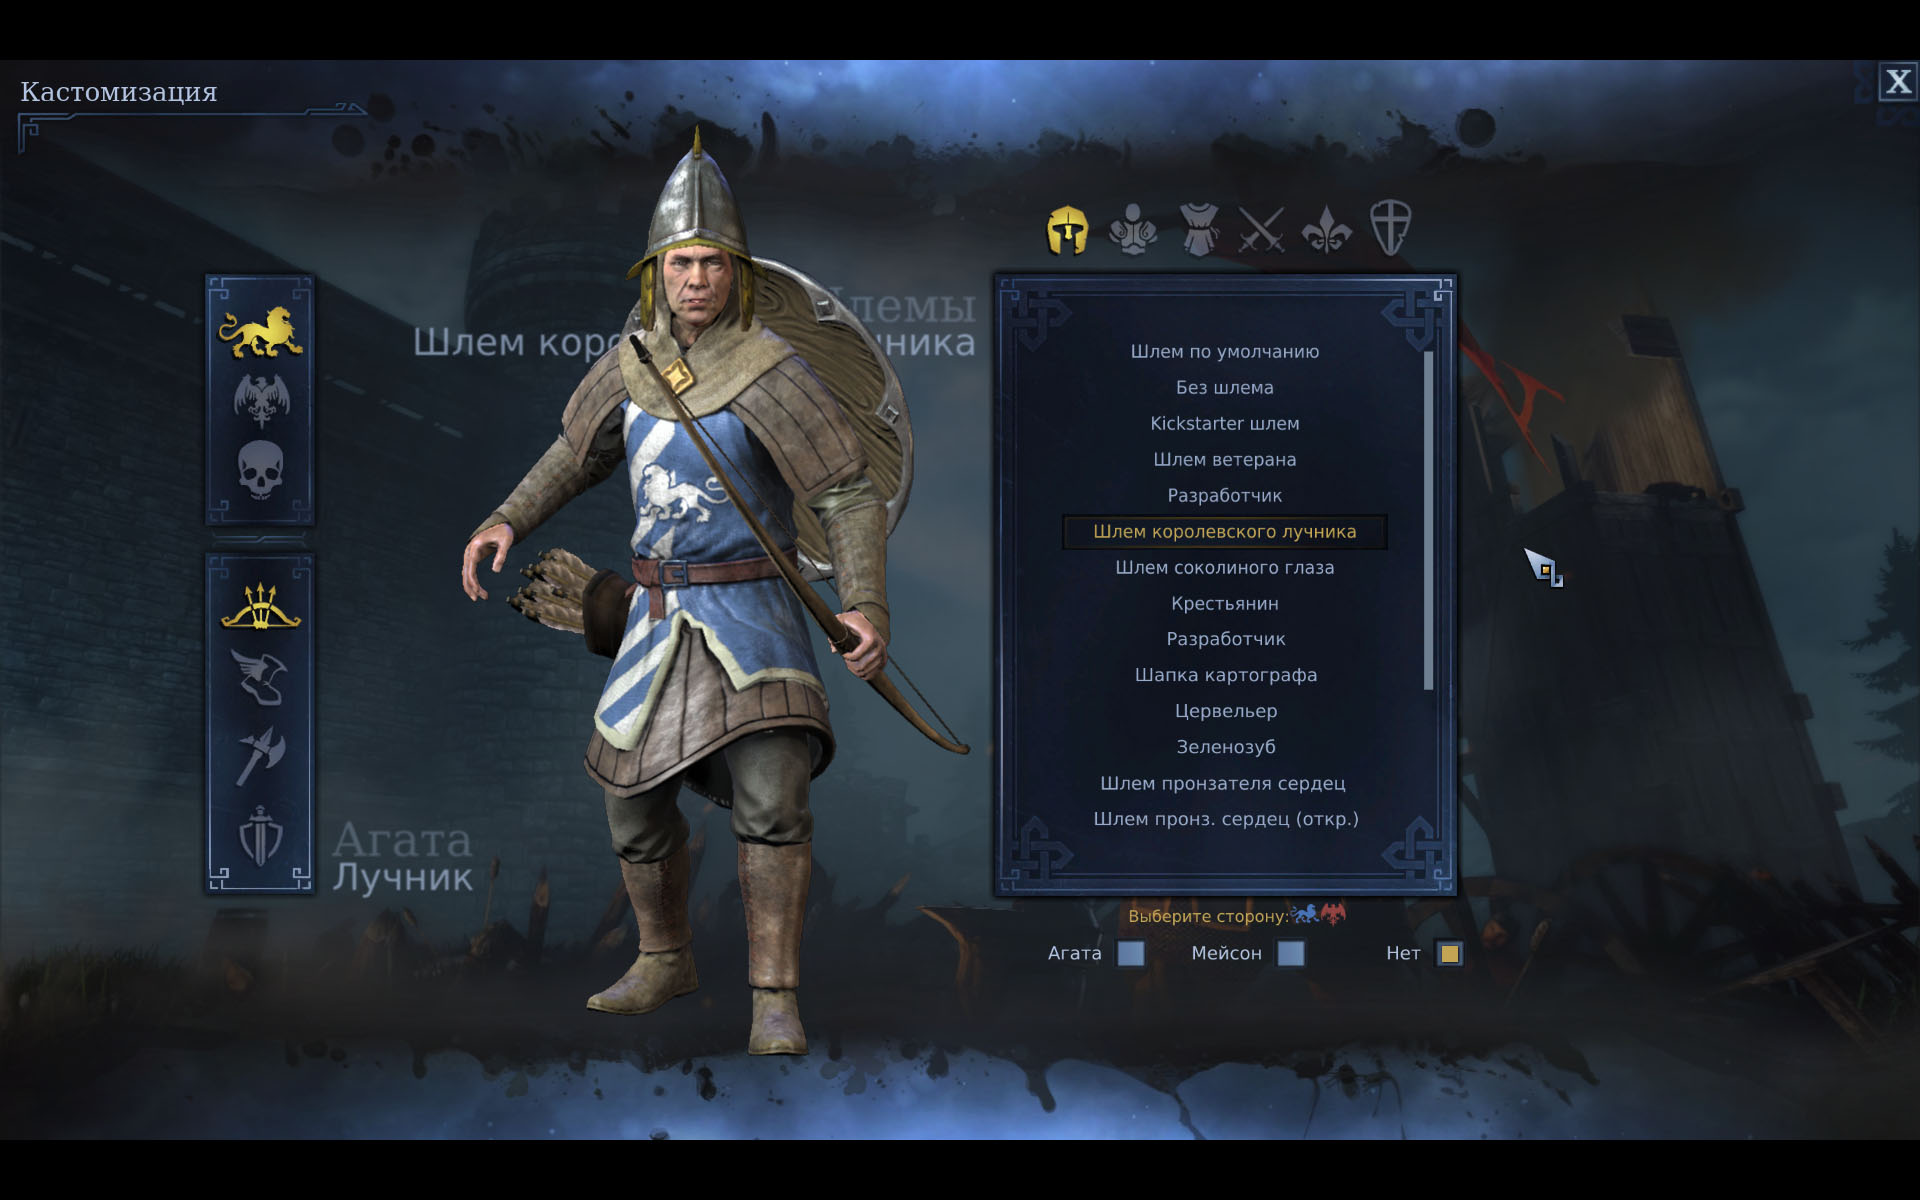 Chivalry: Medieval Warfare Patch 44 – Chivalry Hits the Gym